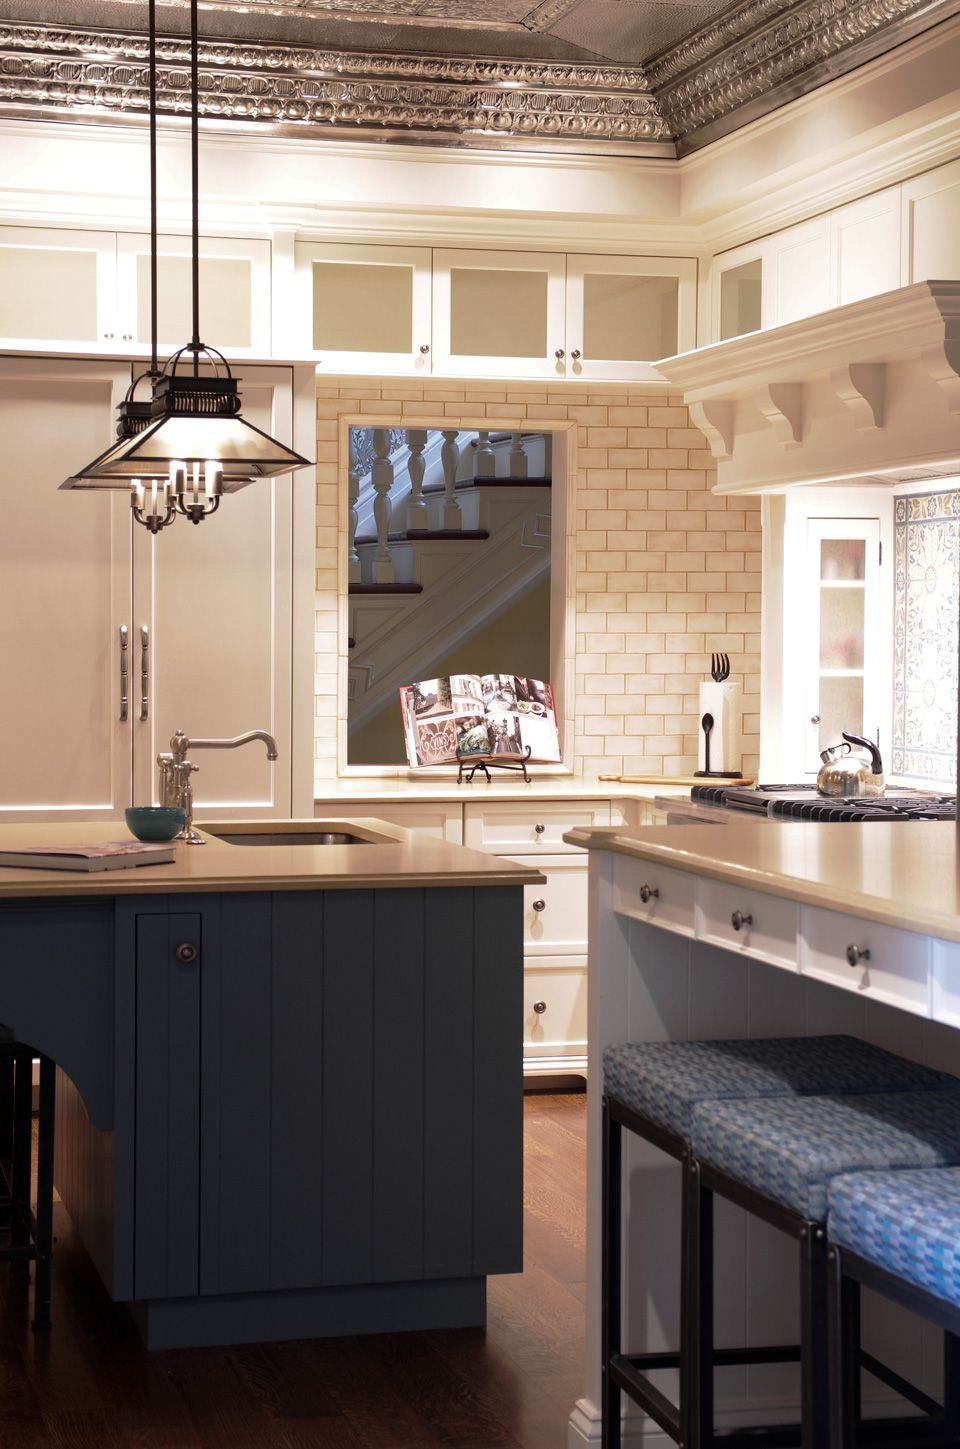 Check Out This Image From The Urban Electric Co Kitchen Inspirations Kitchen Urban Electric